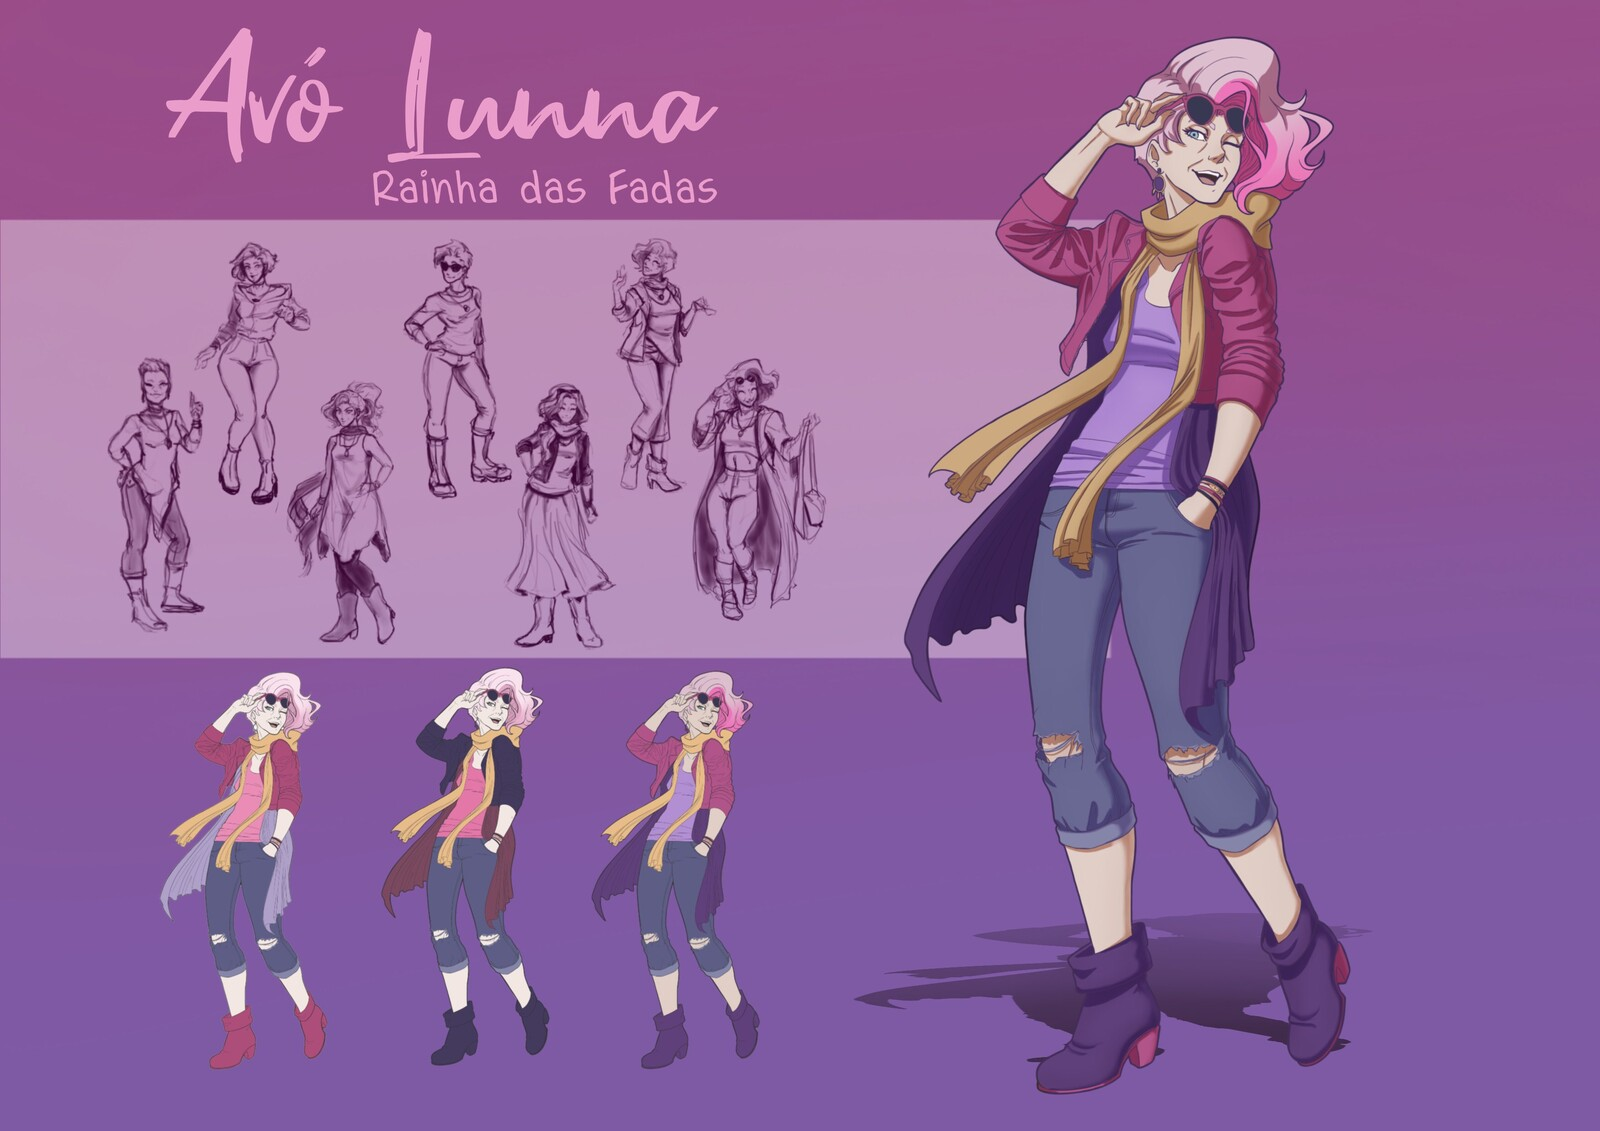 Her Grandma, Lunna, is an outgoing and modern old lady. She loves to travel around the world. Shes quite the cool grandma!